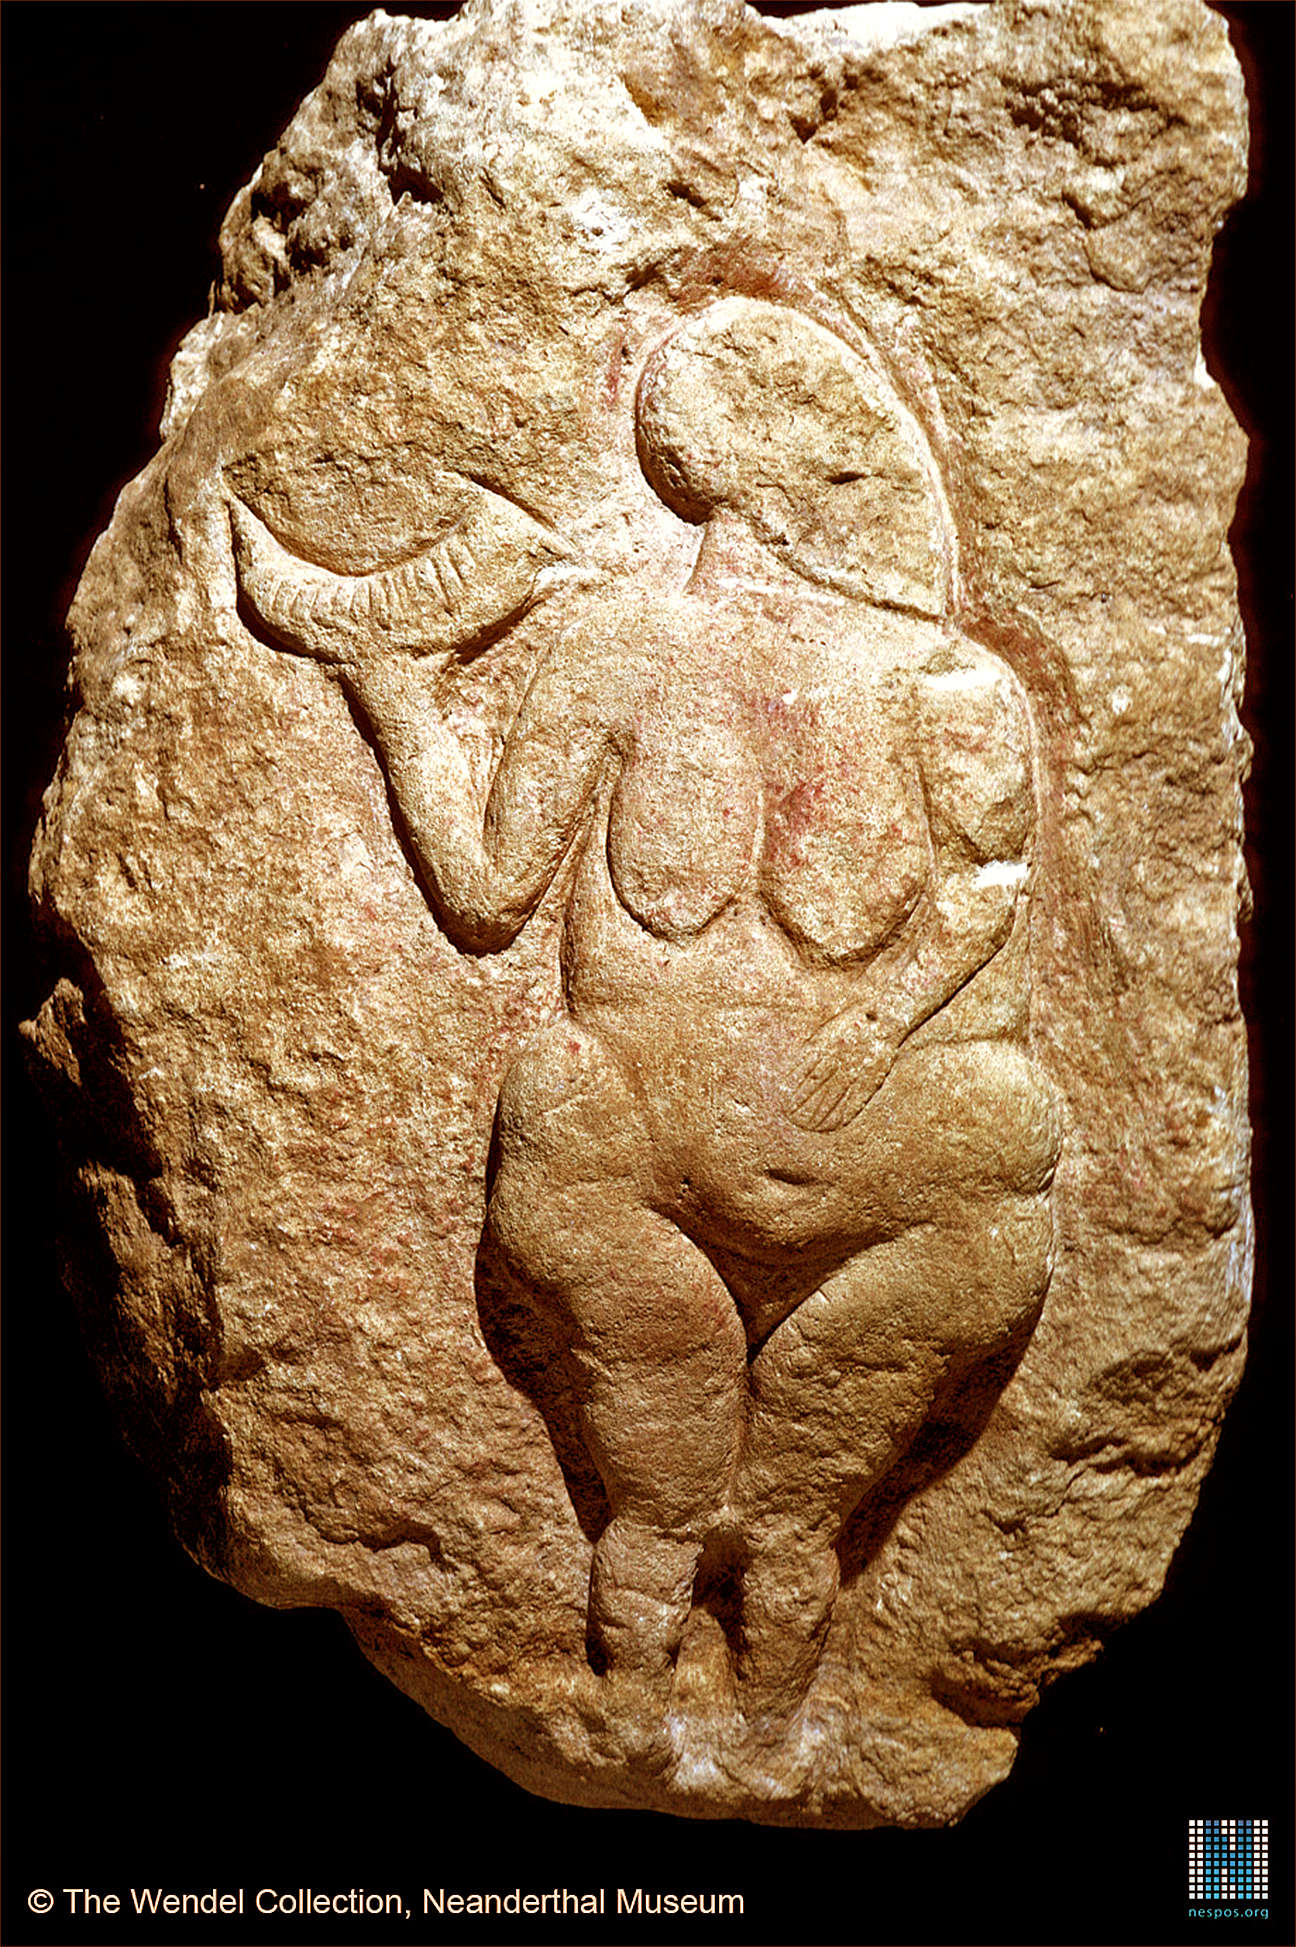 Venus of Laussel, a 25,000-year-old carving found in the Dordogne region of France. This carving is one of hundreds of carvings and figurines of women, most likely goddesses, from the Upper Paleolithic era.